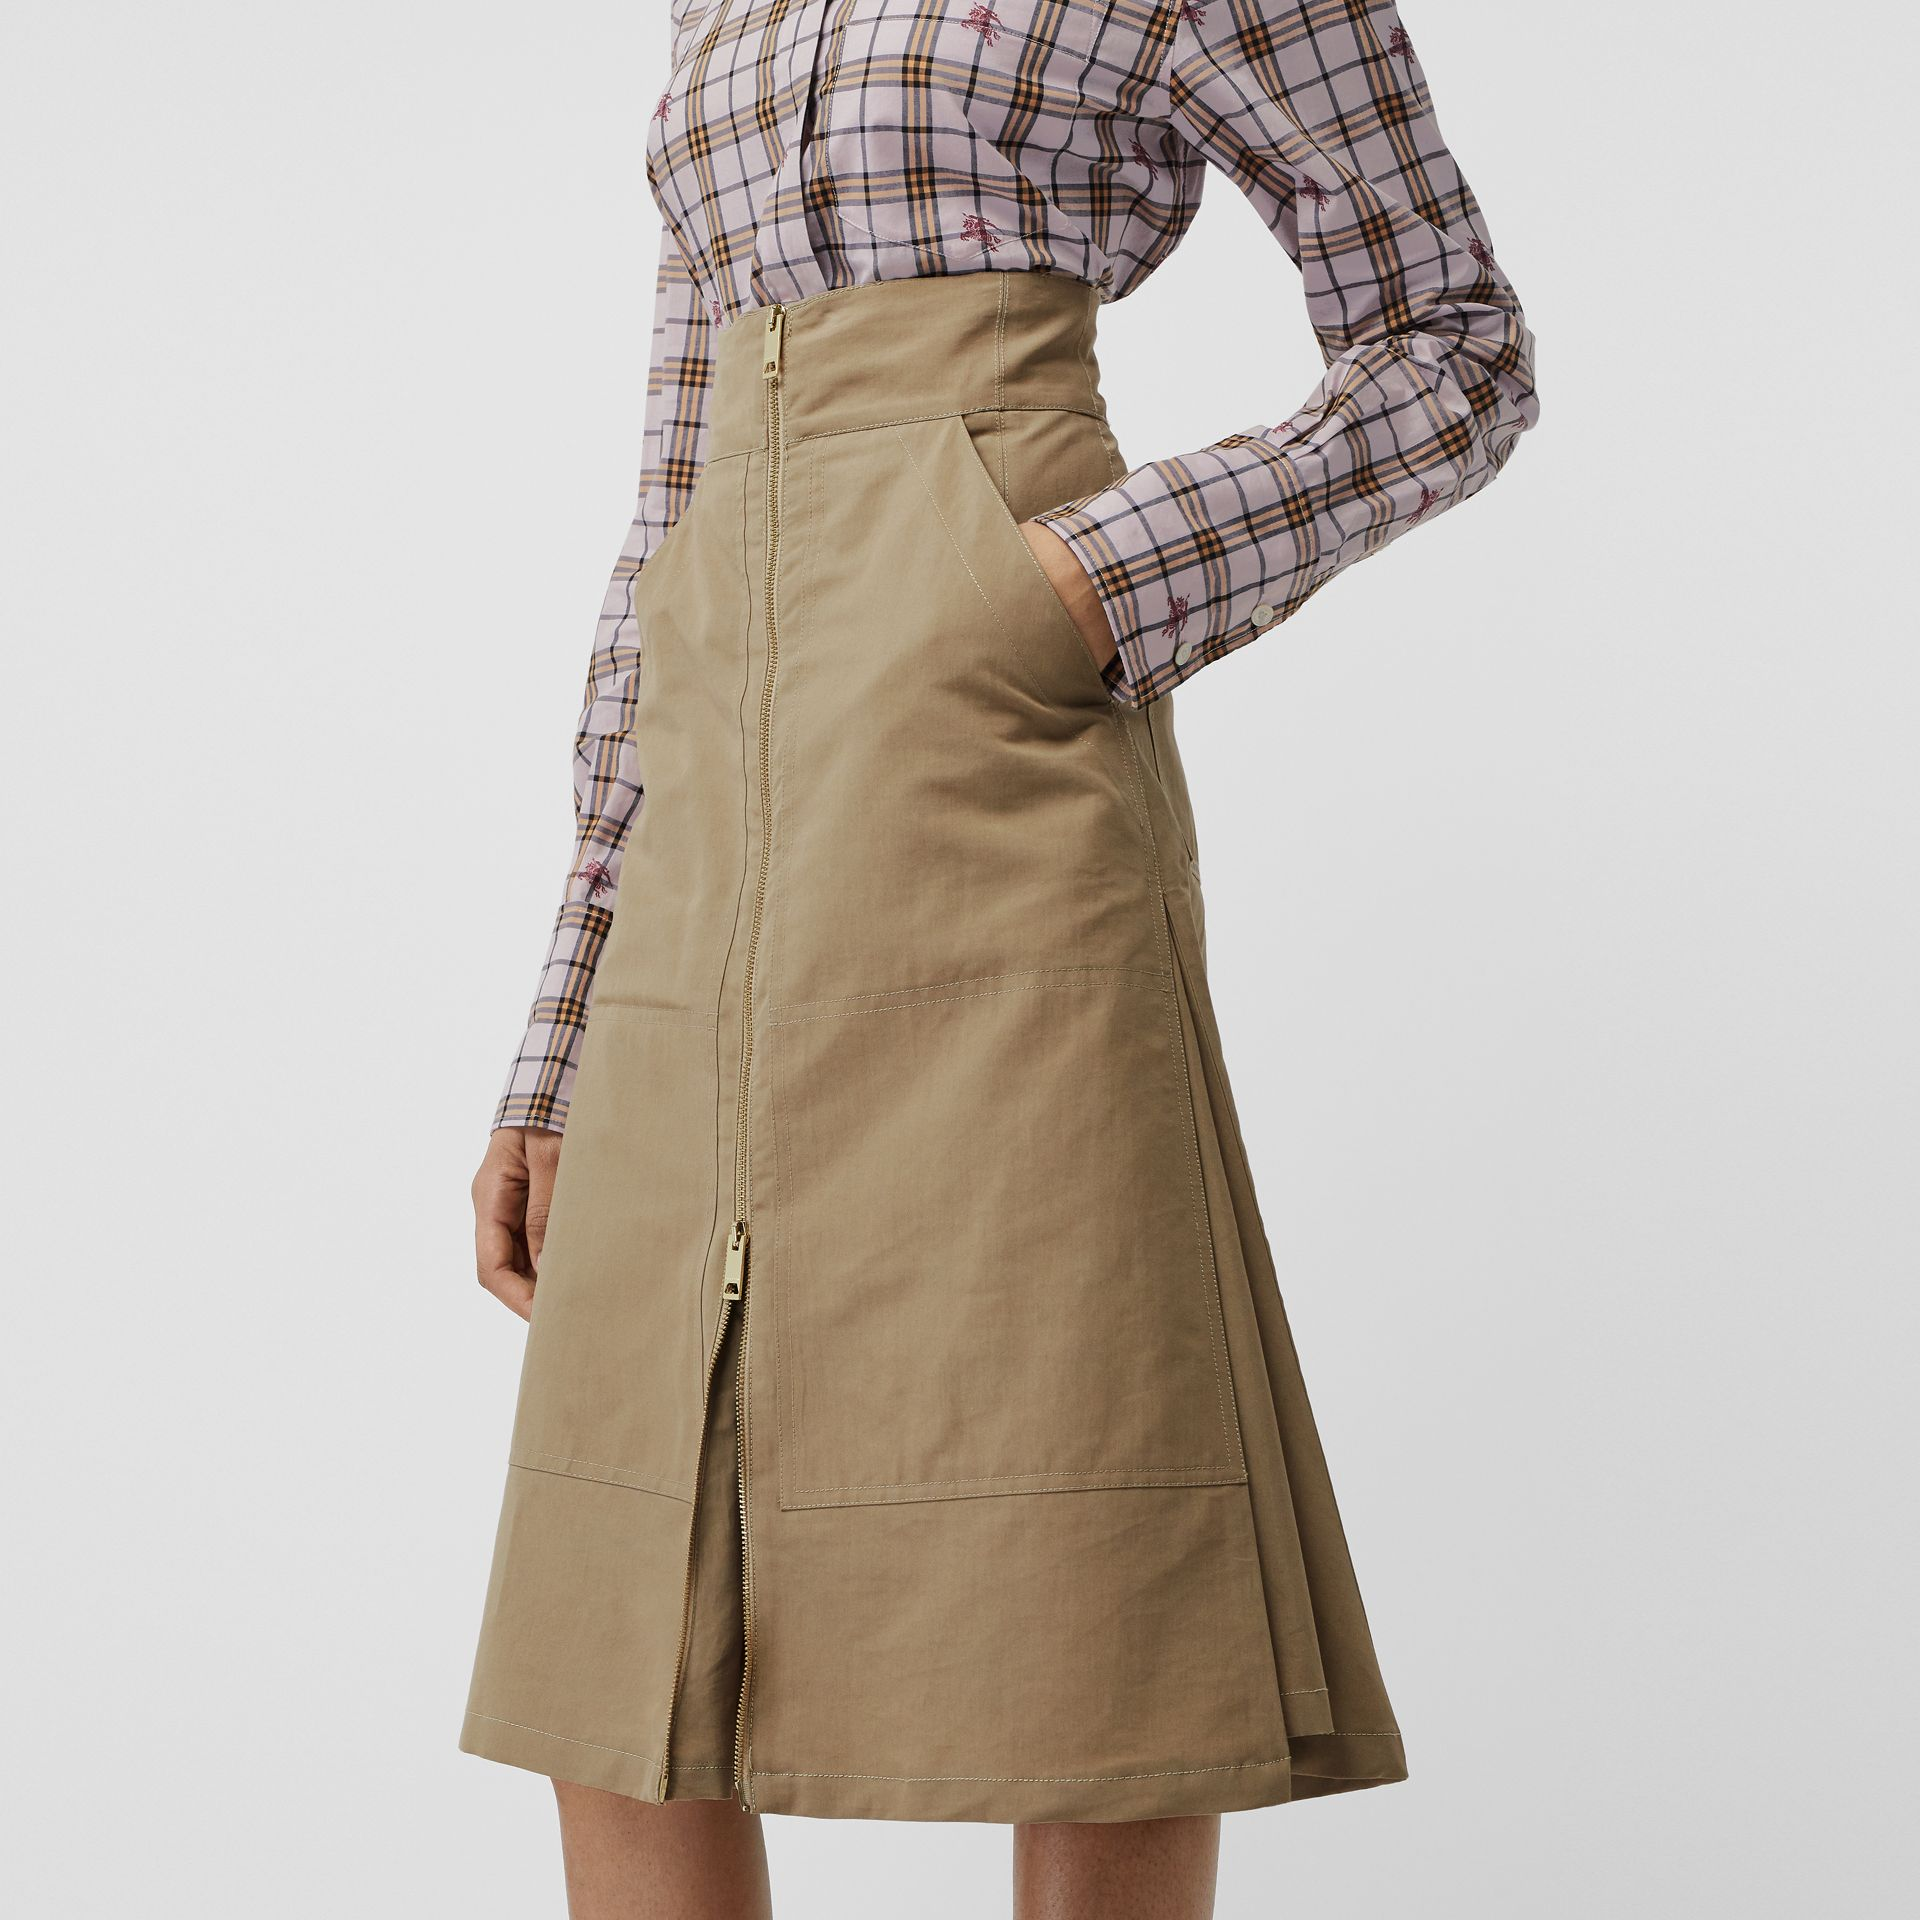 Cotton Silk High-waisted Skirt in Beige - Women | Burberry Singapore - gallery image 4